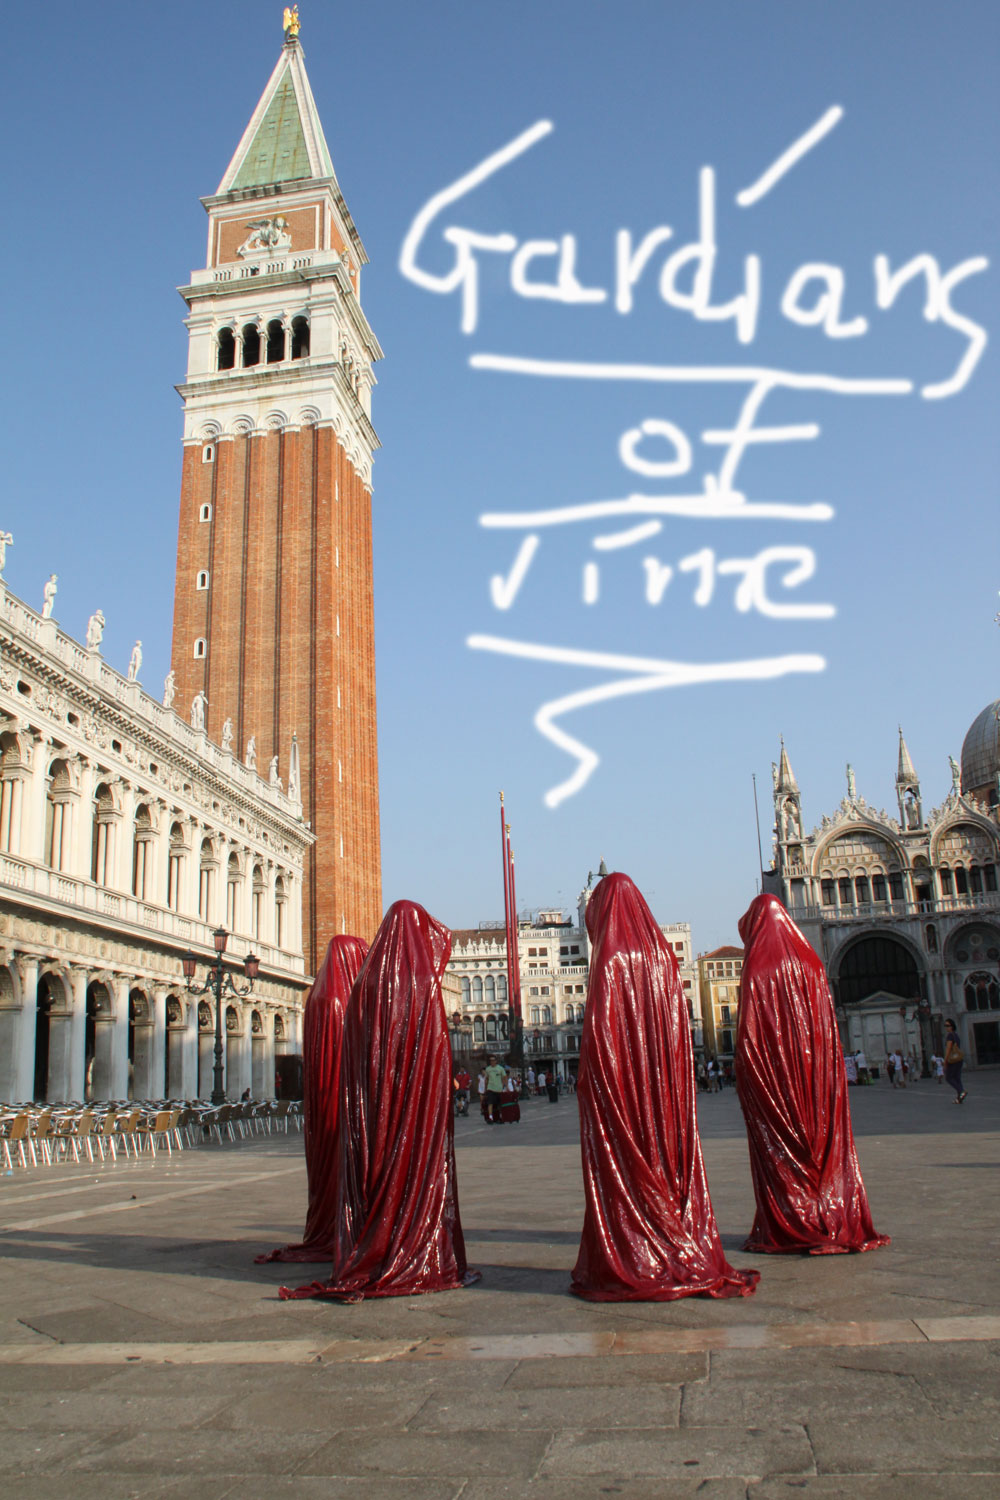 public art biennial festival show exhibition in Venice by Manfred Kielnhofer contemporary art design architecture sculpture theatre 4310